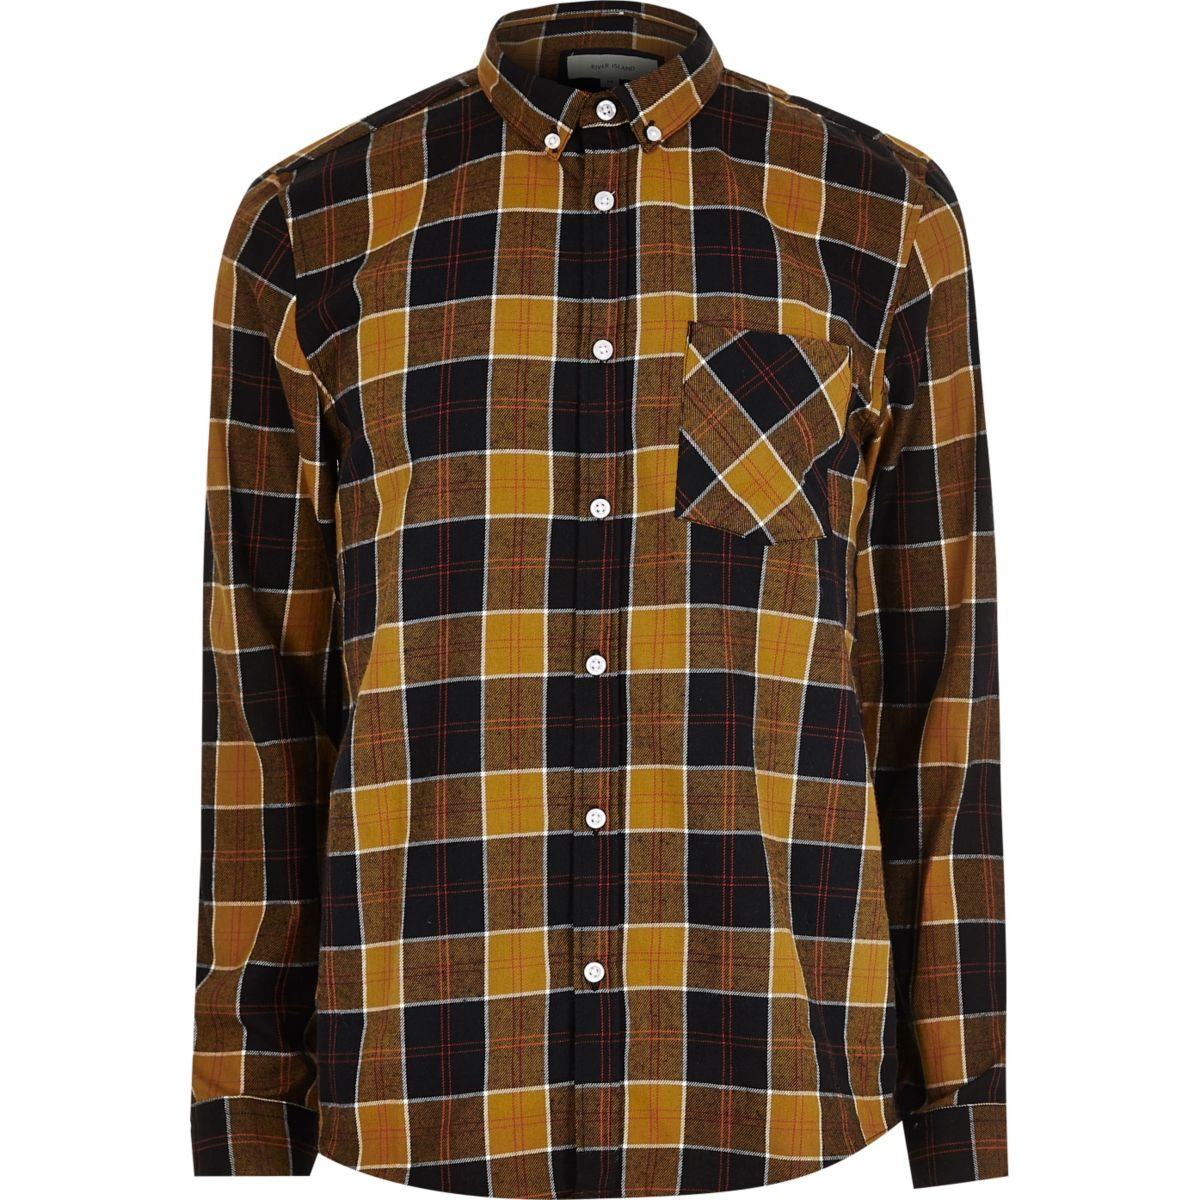 Gold and camel check shirt